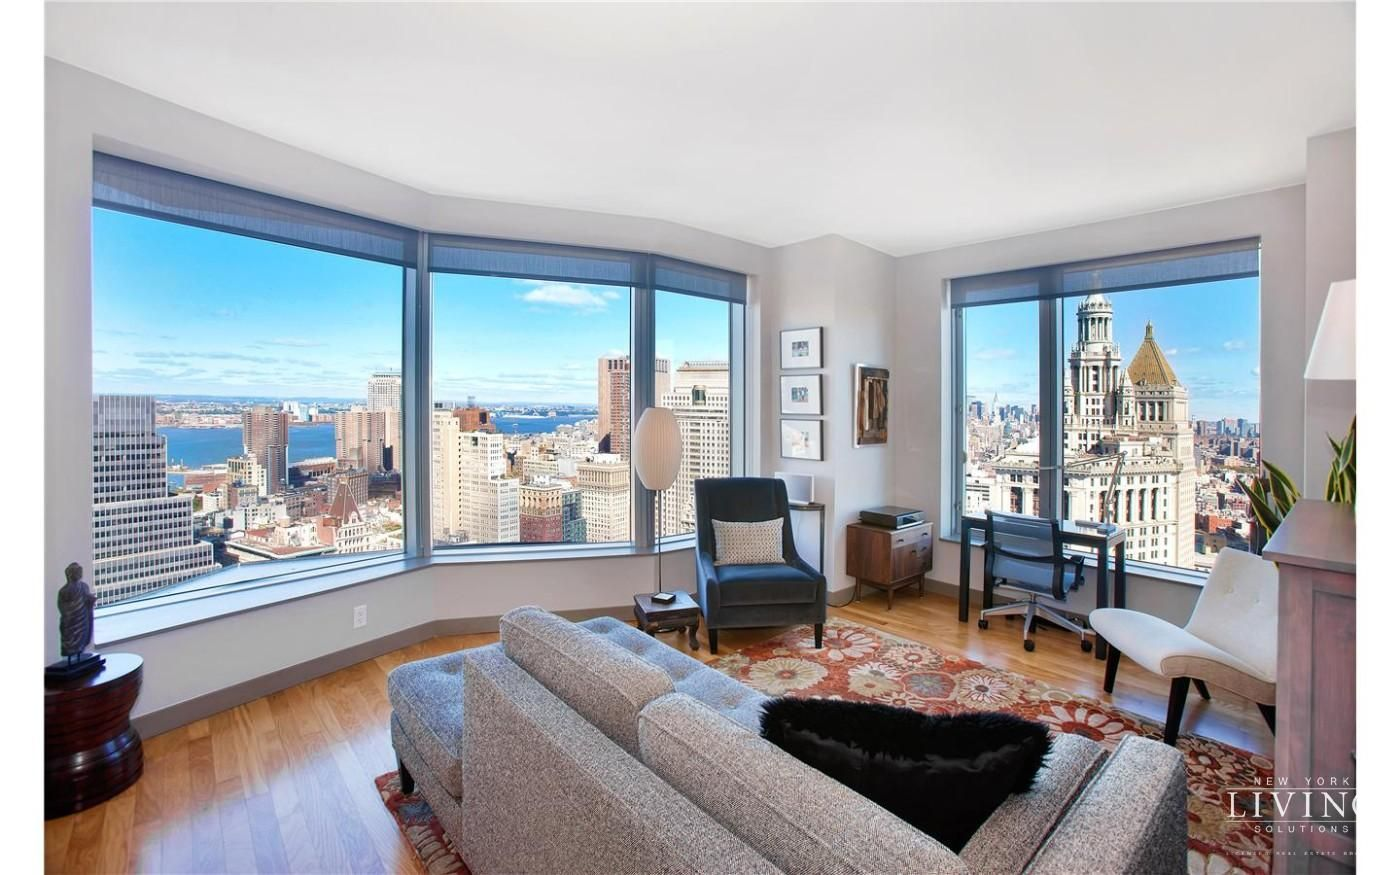 3 Bedrooms Bathrooms Apartment For Rent In Financial District